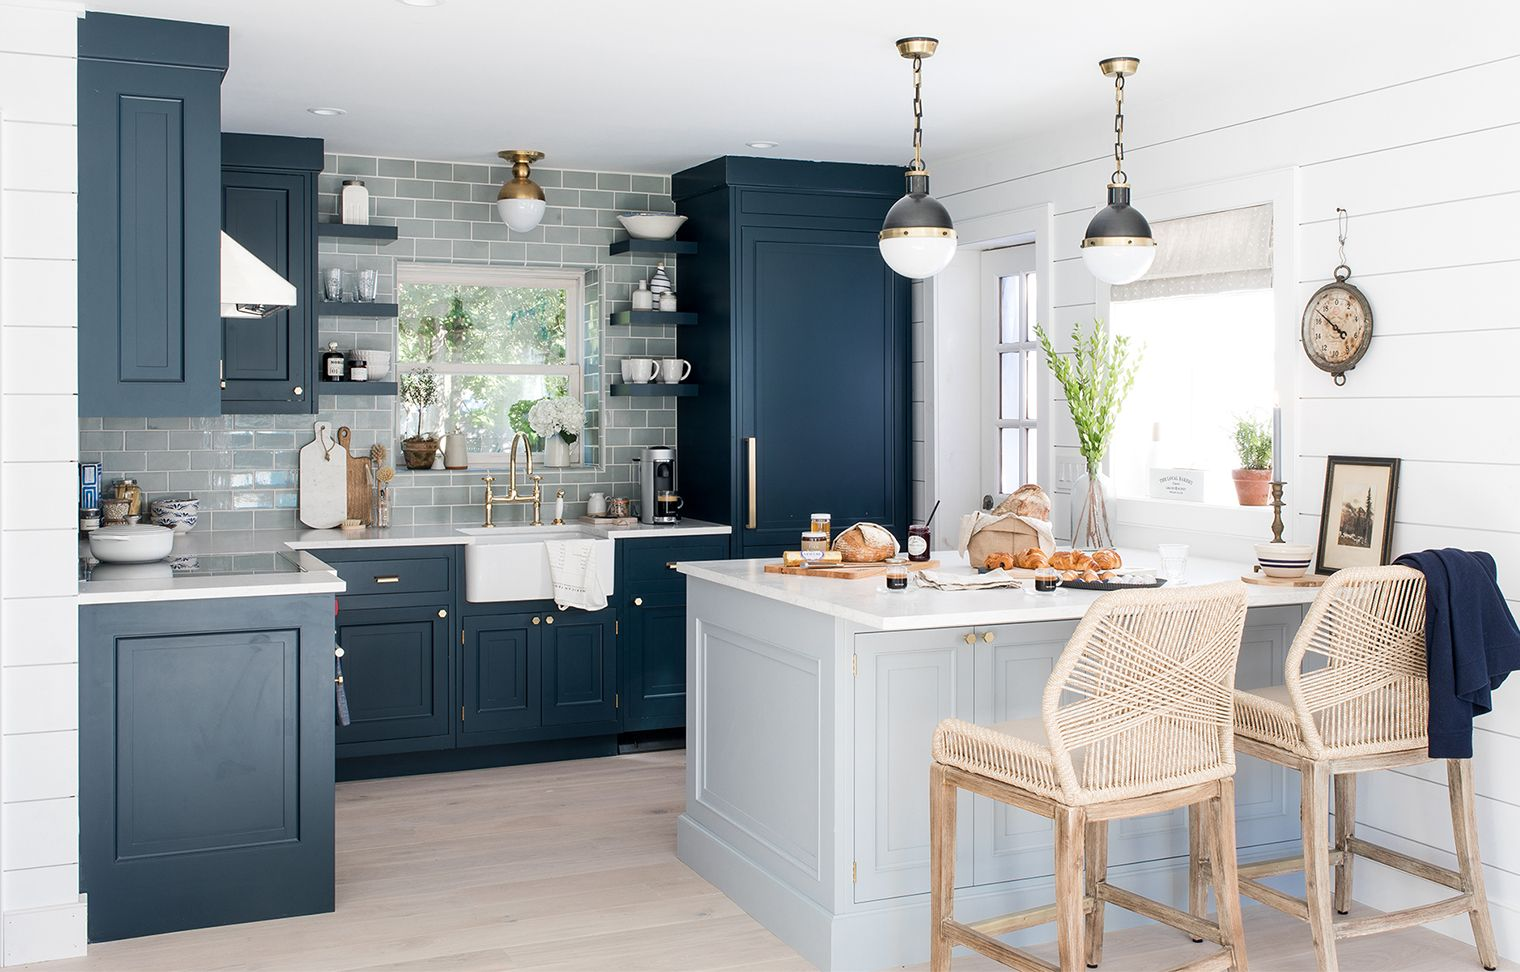 our beach house kitchen: the reveal (with images